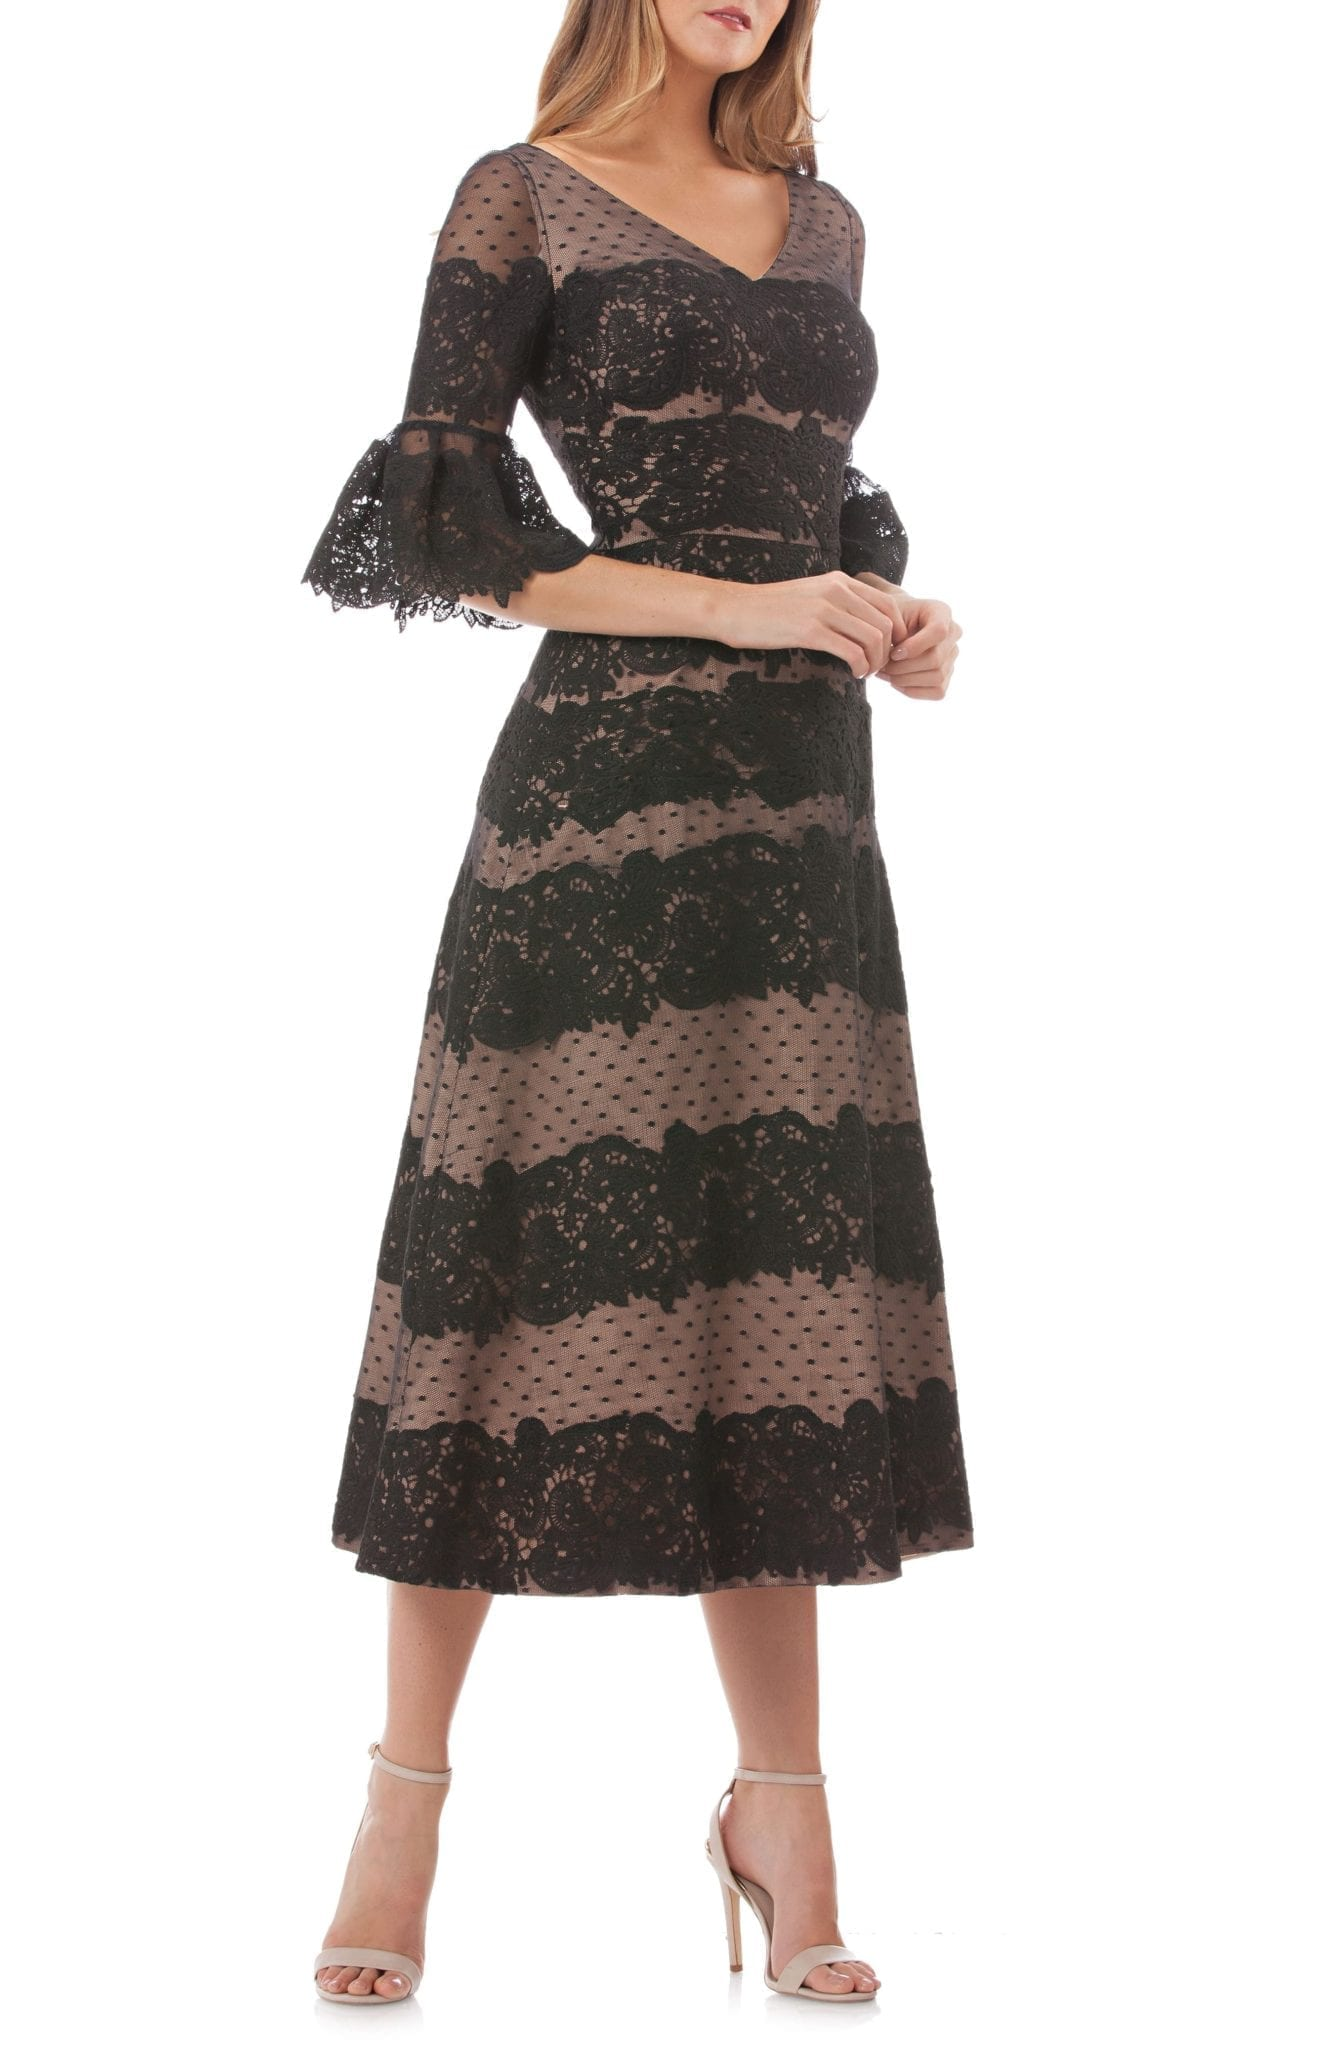 d37c66fd097 JS COLLECTIONS Embroidered Lace Tea Length Black Dress - We Select ...